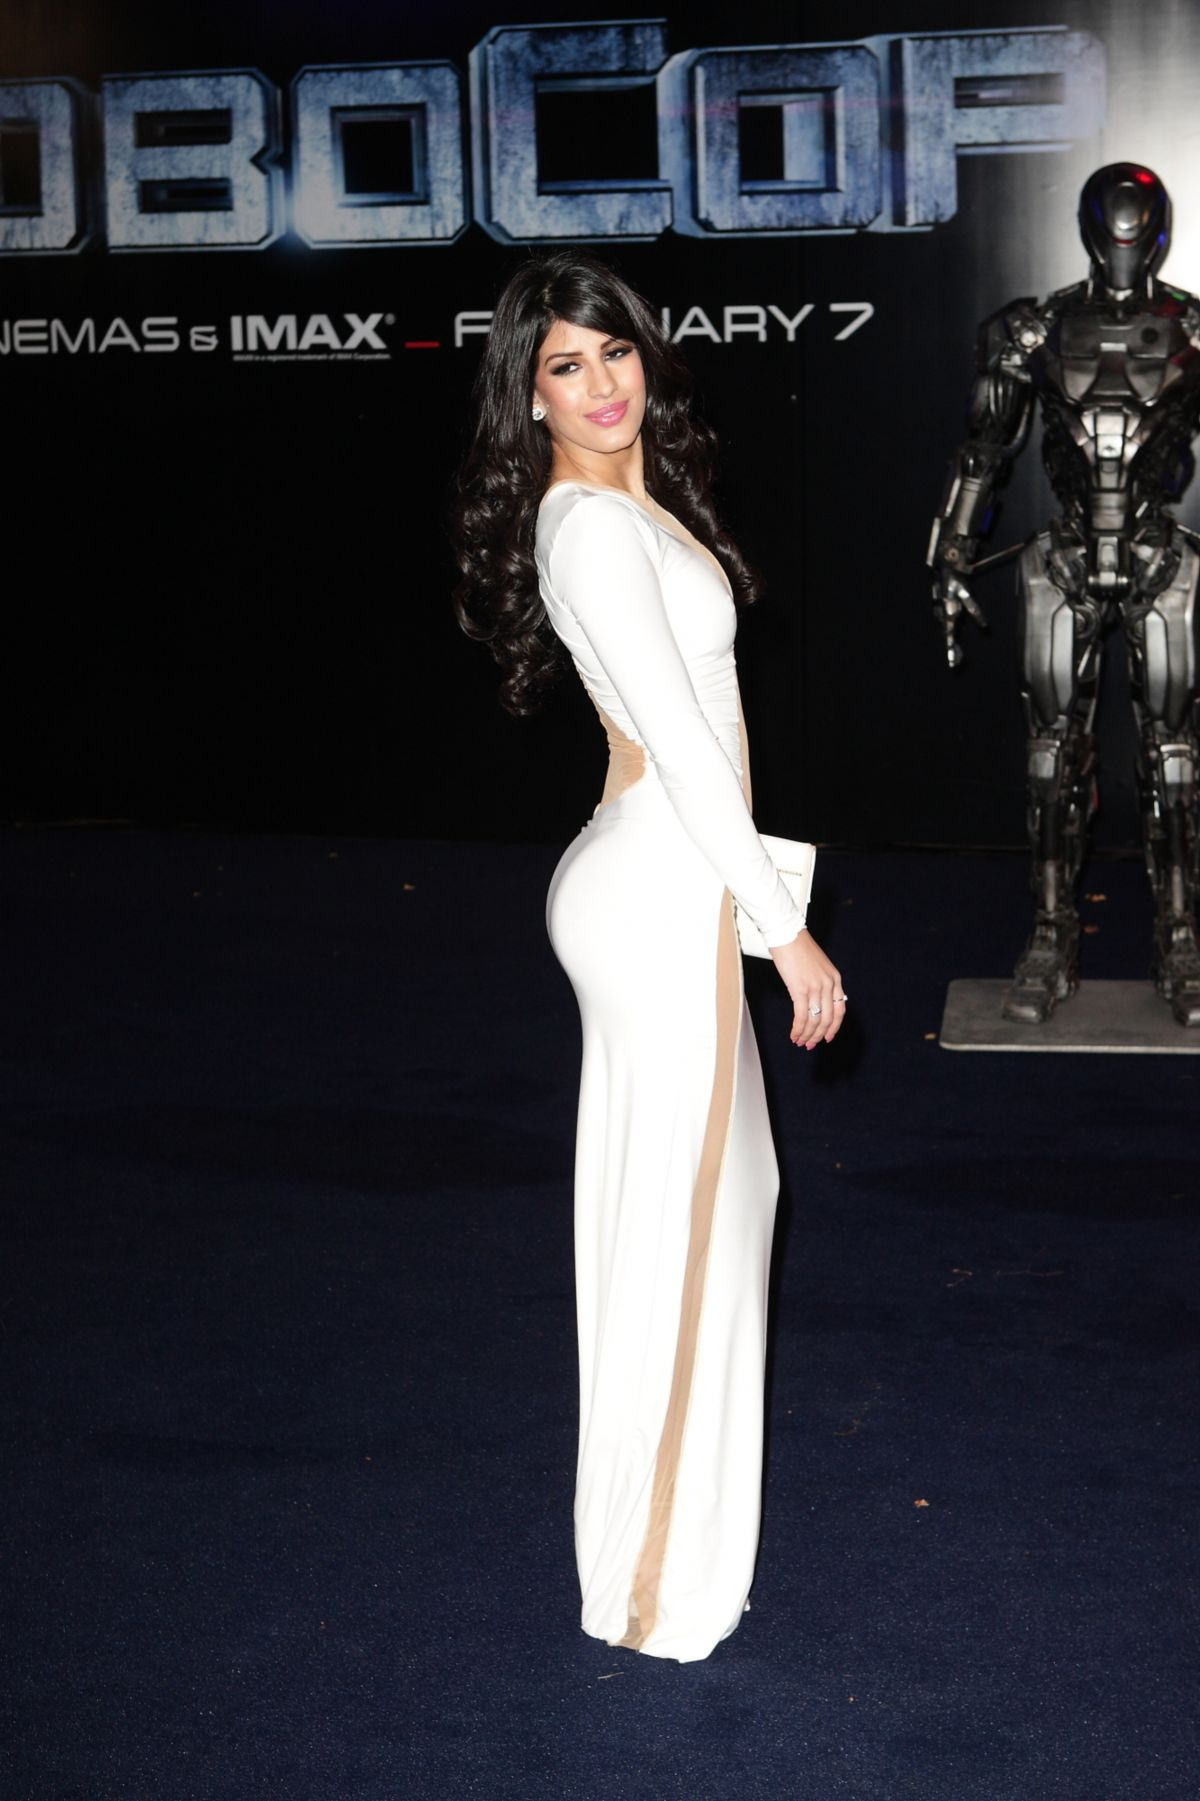 jasmin-walia-at-robocop-premiere-in-london_2.jpg - 178.08 KB